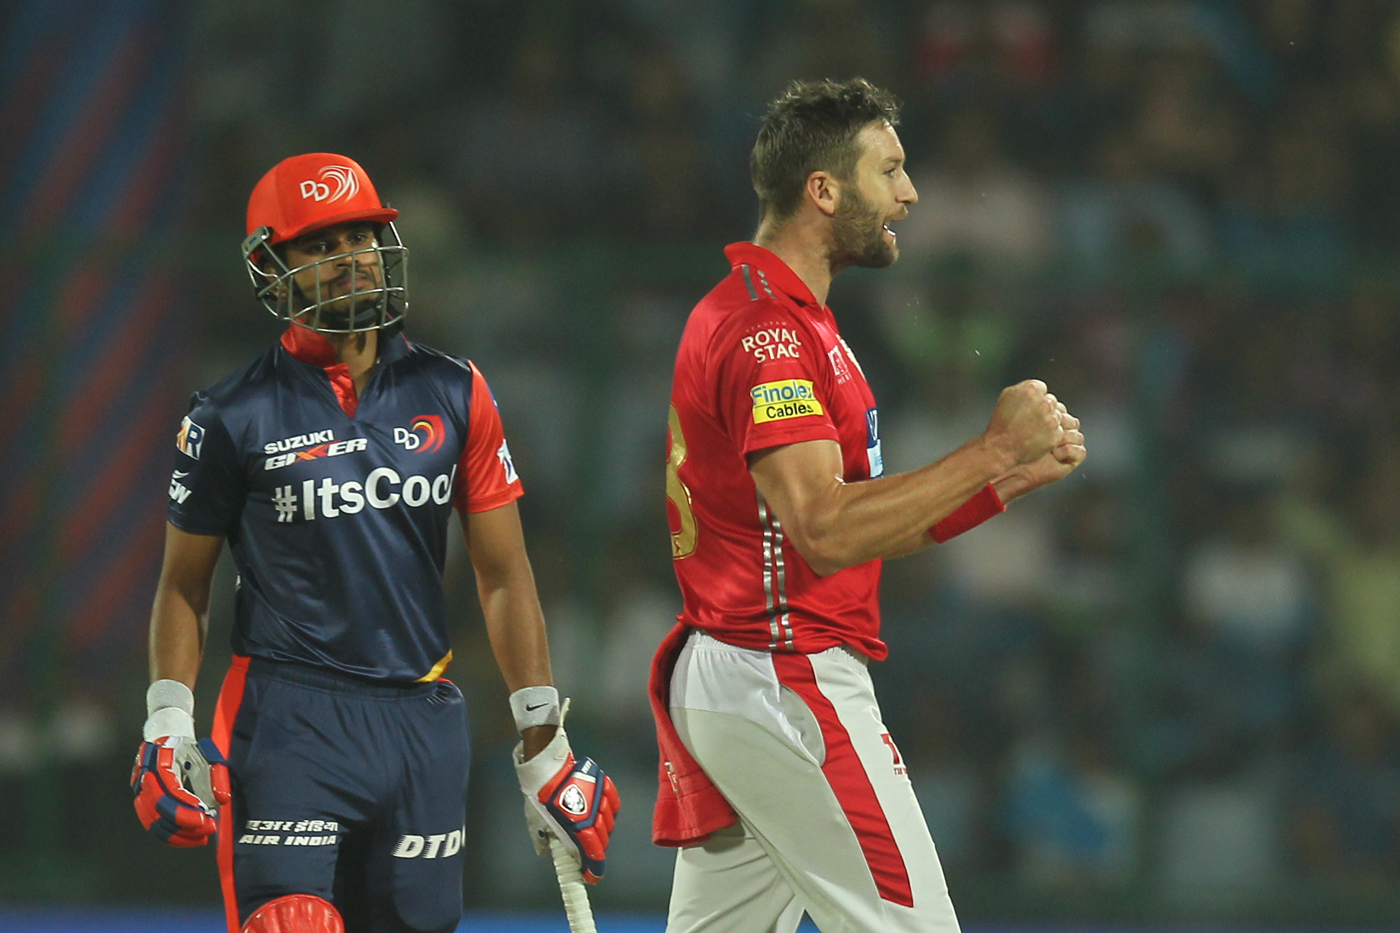 IPL 2018: It Was Really Disappointing to Lose Such a Close Game - Liam Plunkett